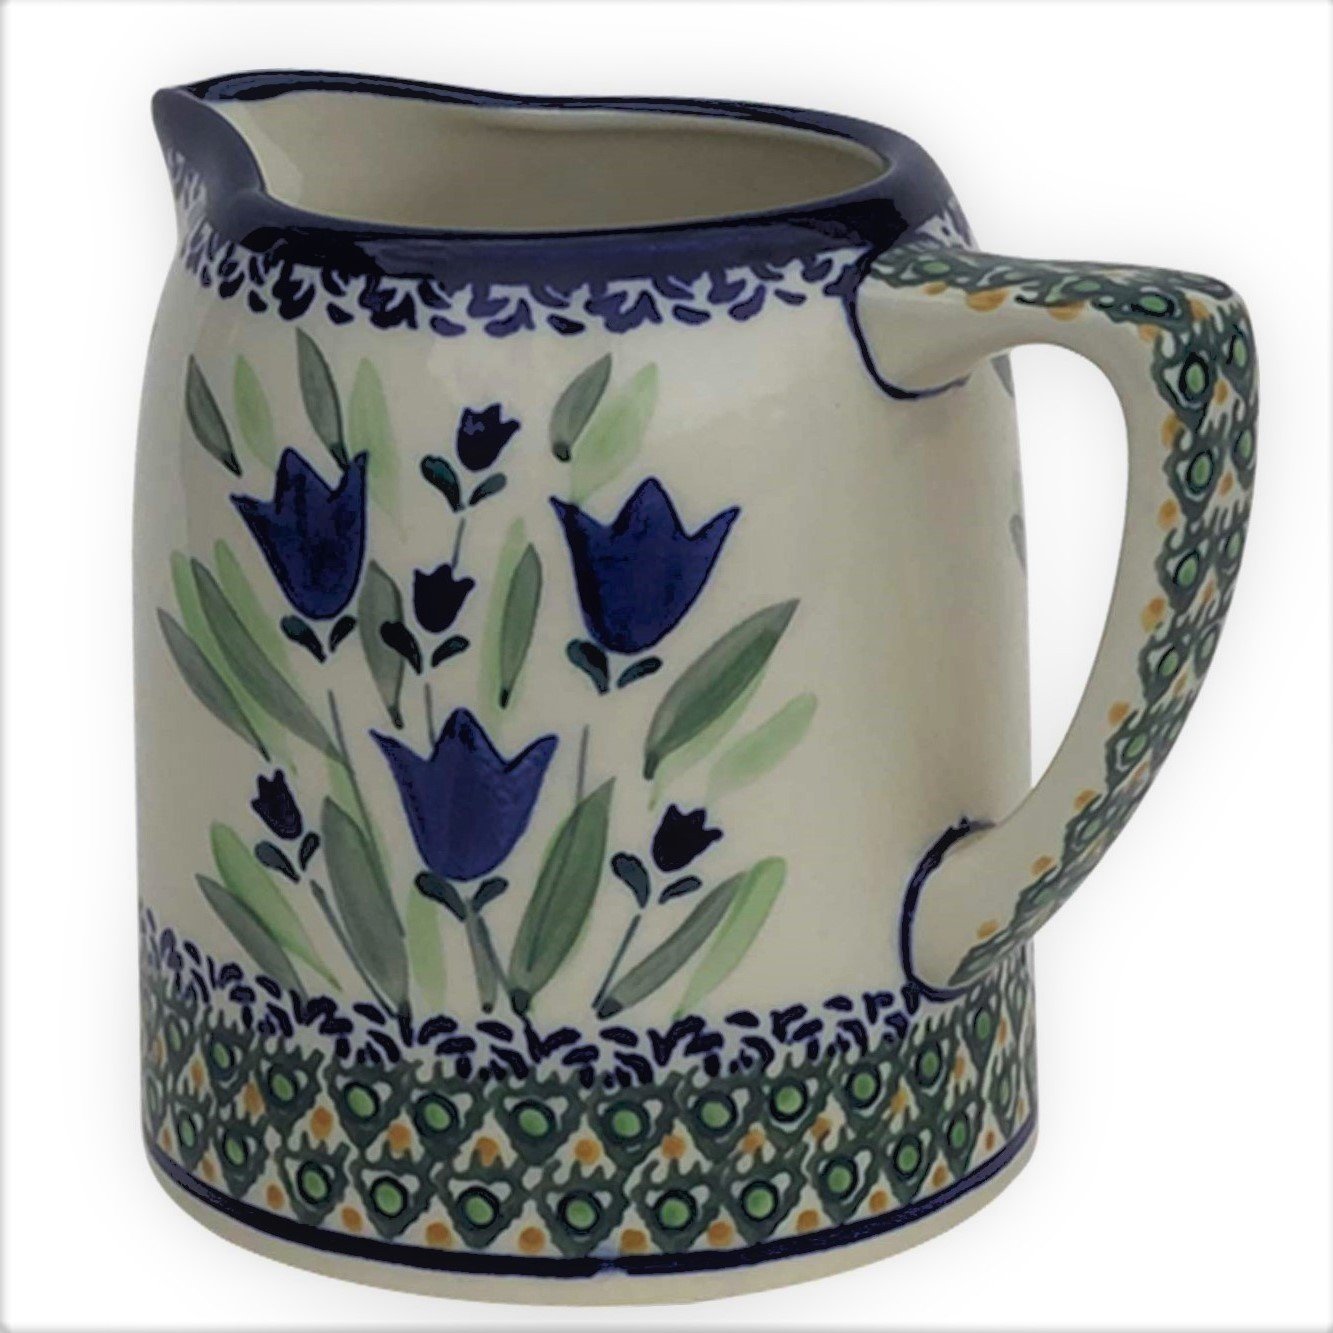 Pottery Avenue 7L Cylinder Stoneware Pitcher - 841-160AR BLUE TULIP